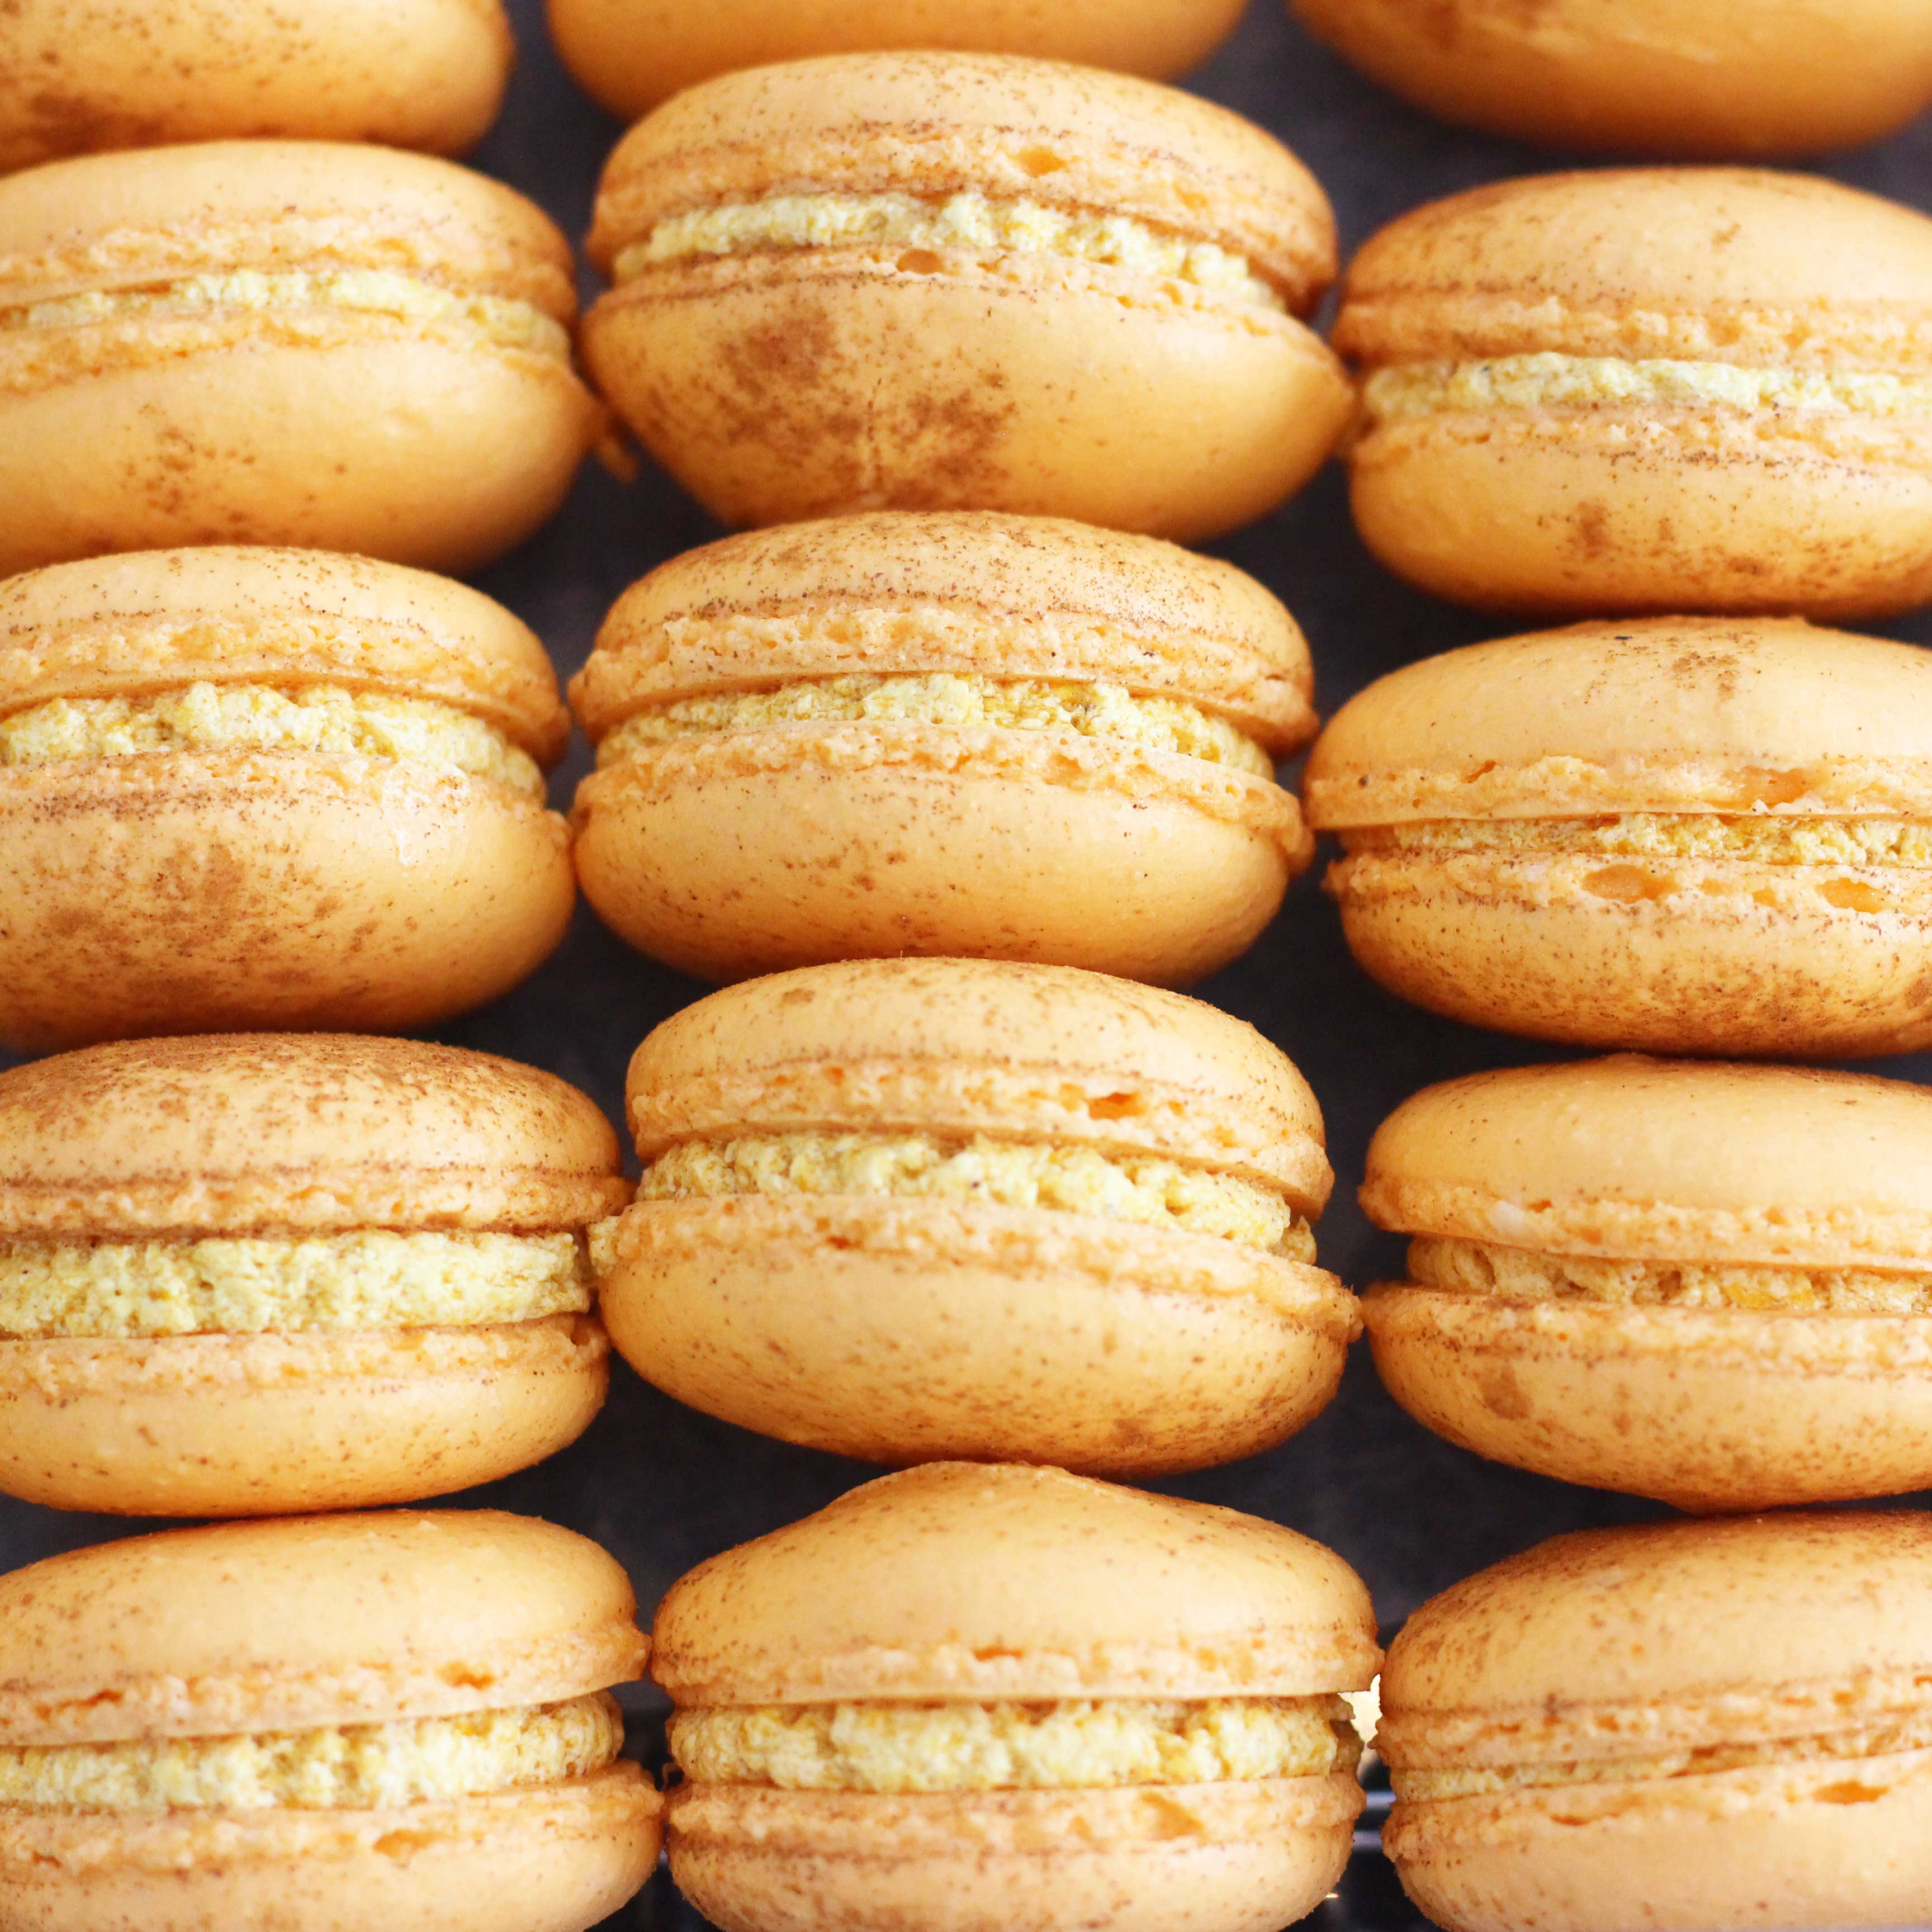 pumpkin macarons from Pierrot Catering in New Jersey